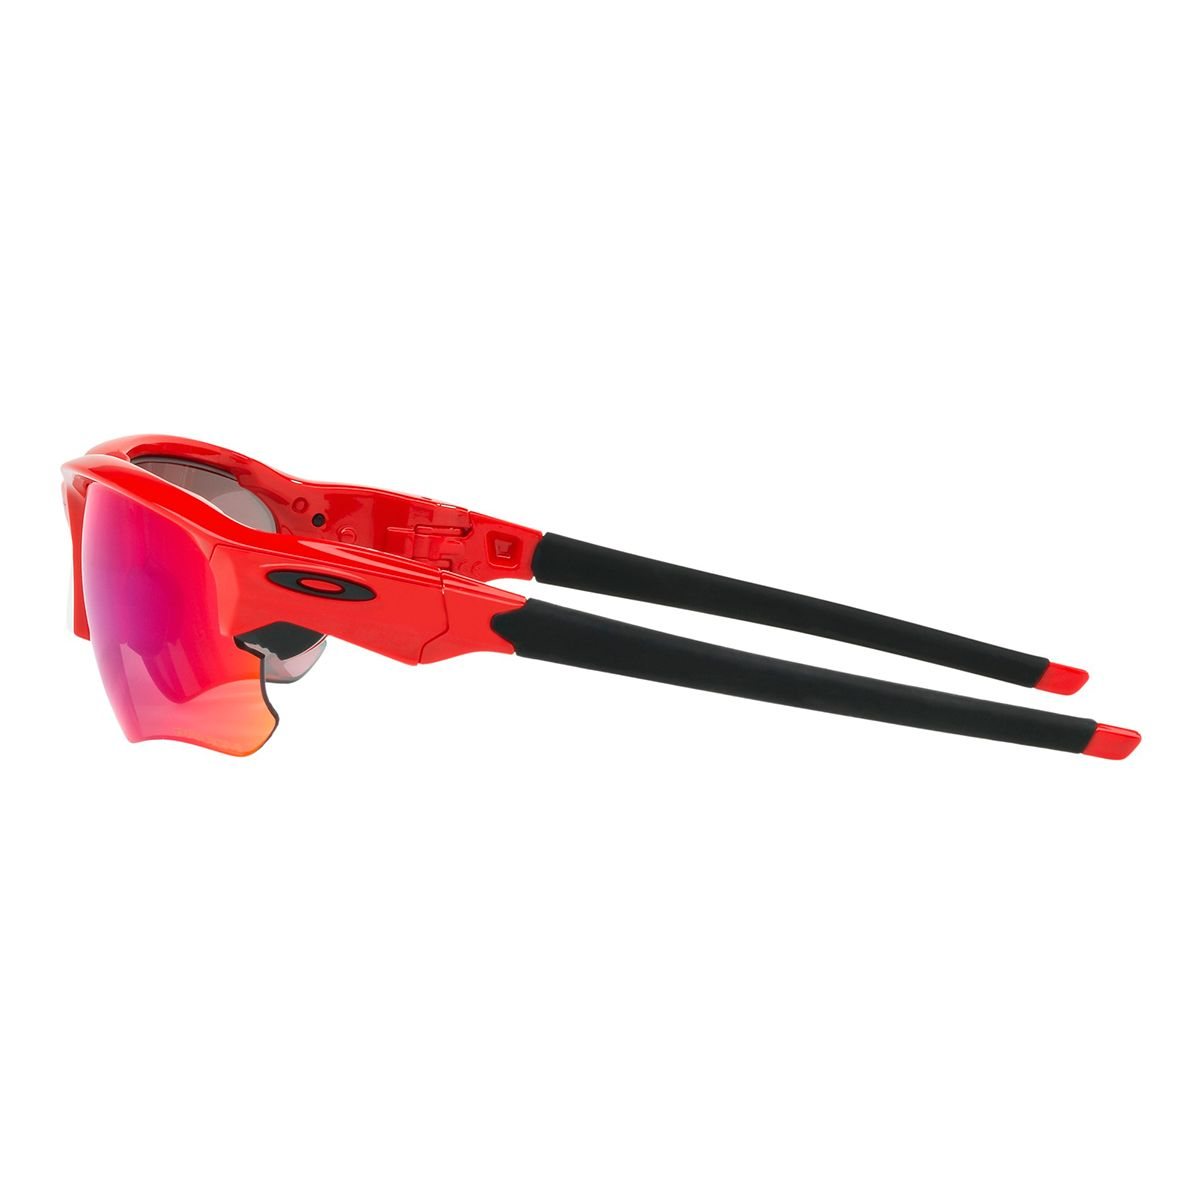 d921bb0521dff Buy OAKLEY FLAK DRAFT sunglasses